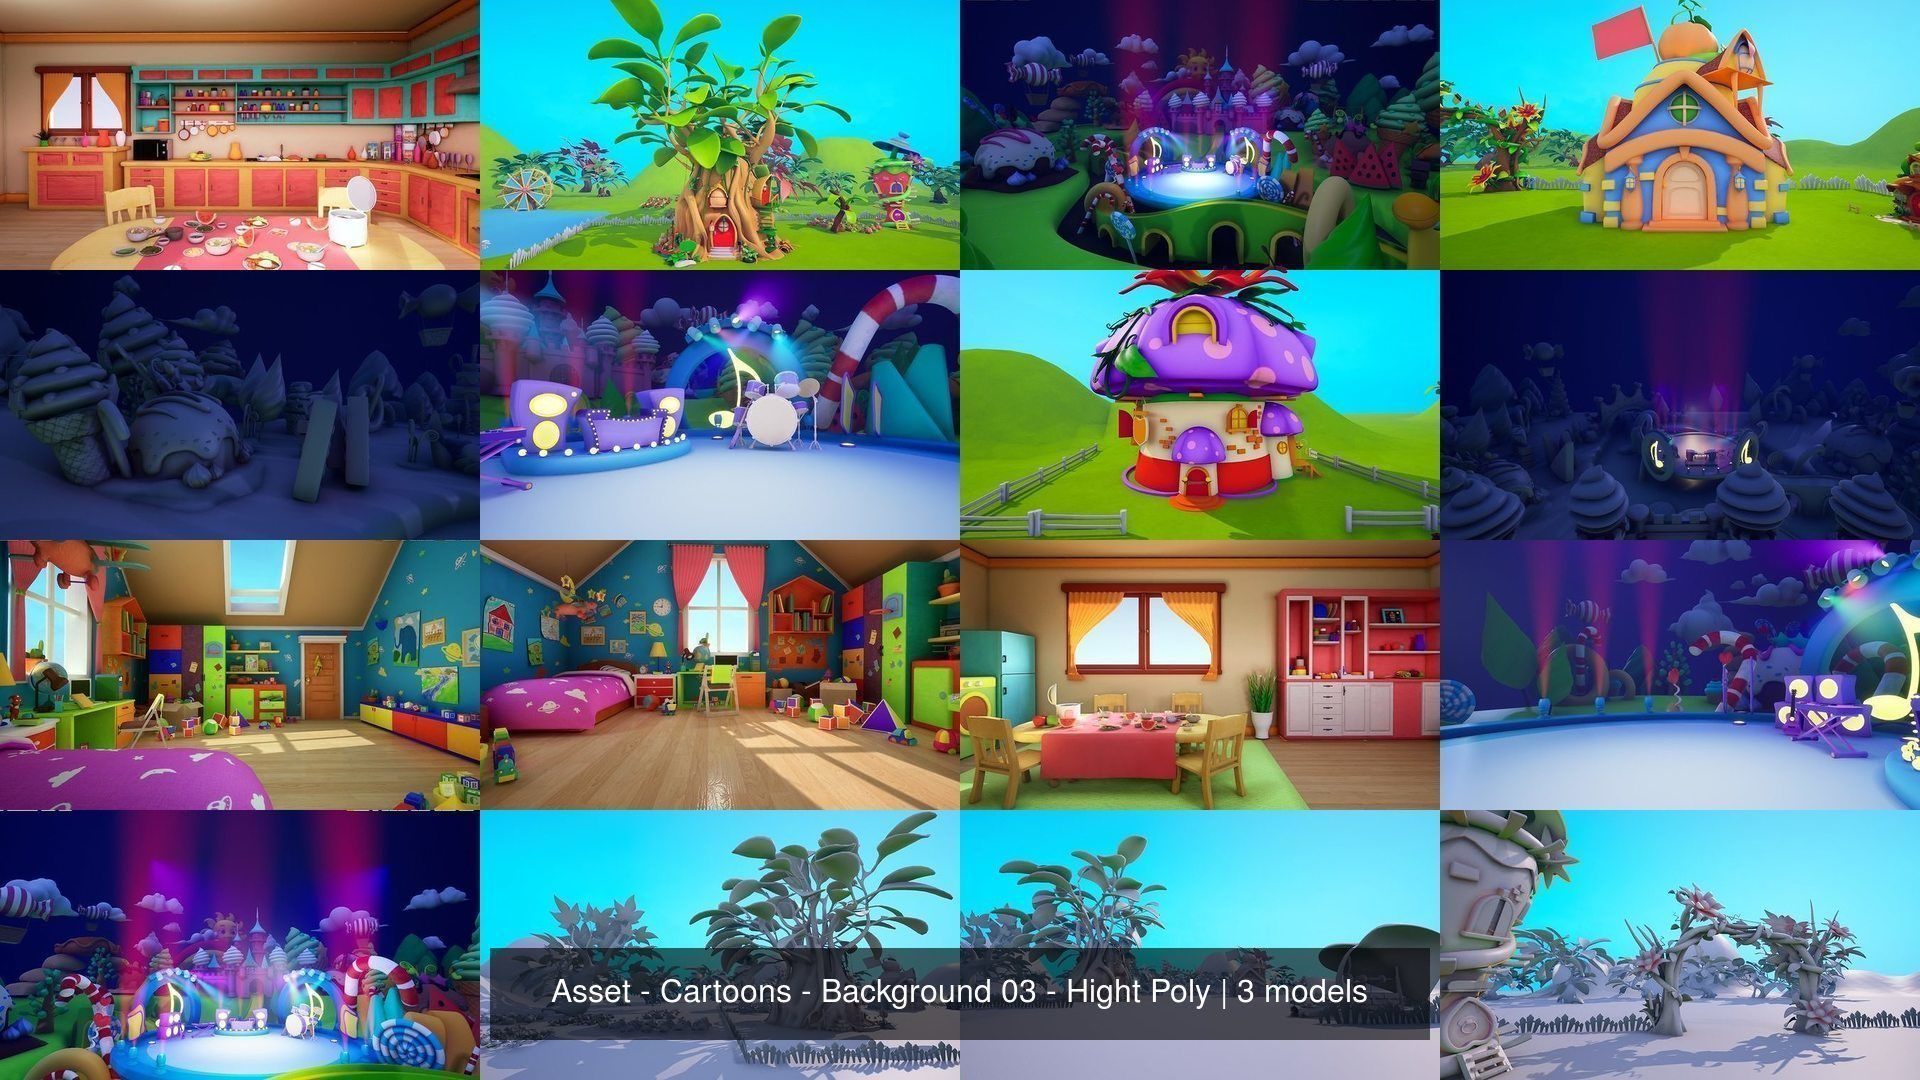 Asset - Cartoons - Background 03 - Hight Poly